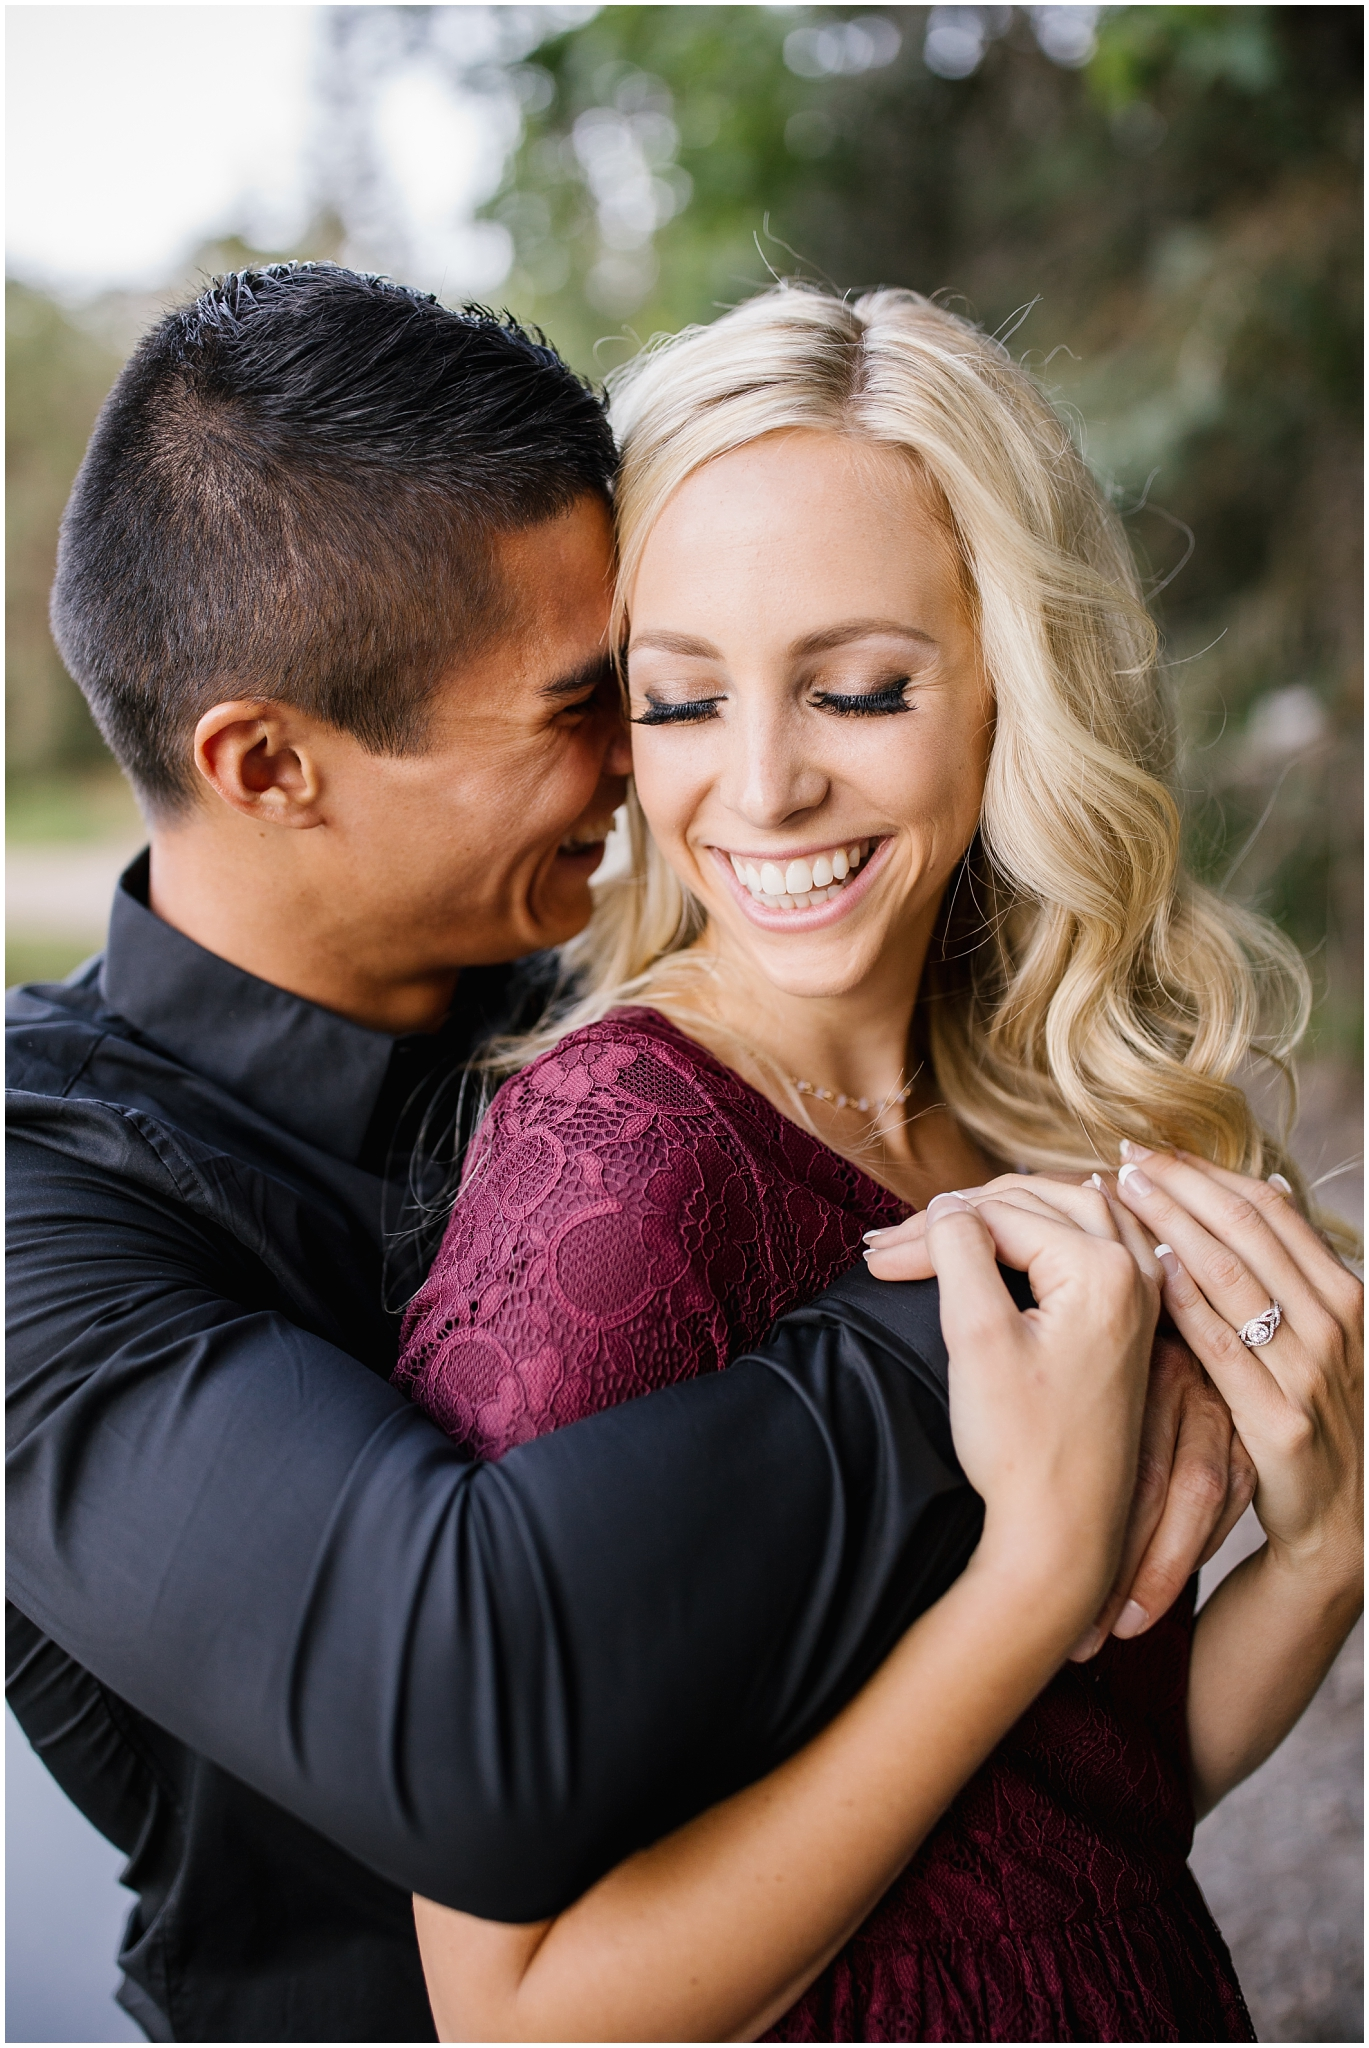 HCengagements-79_Lizzie-B-Imagery-Utah-Wedding-Photographer-Park-City-Salt-Lake-City-Payson-Canyon-Engagement-Session.jpg